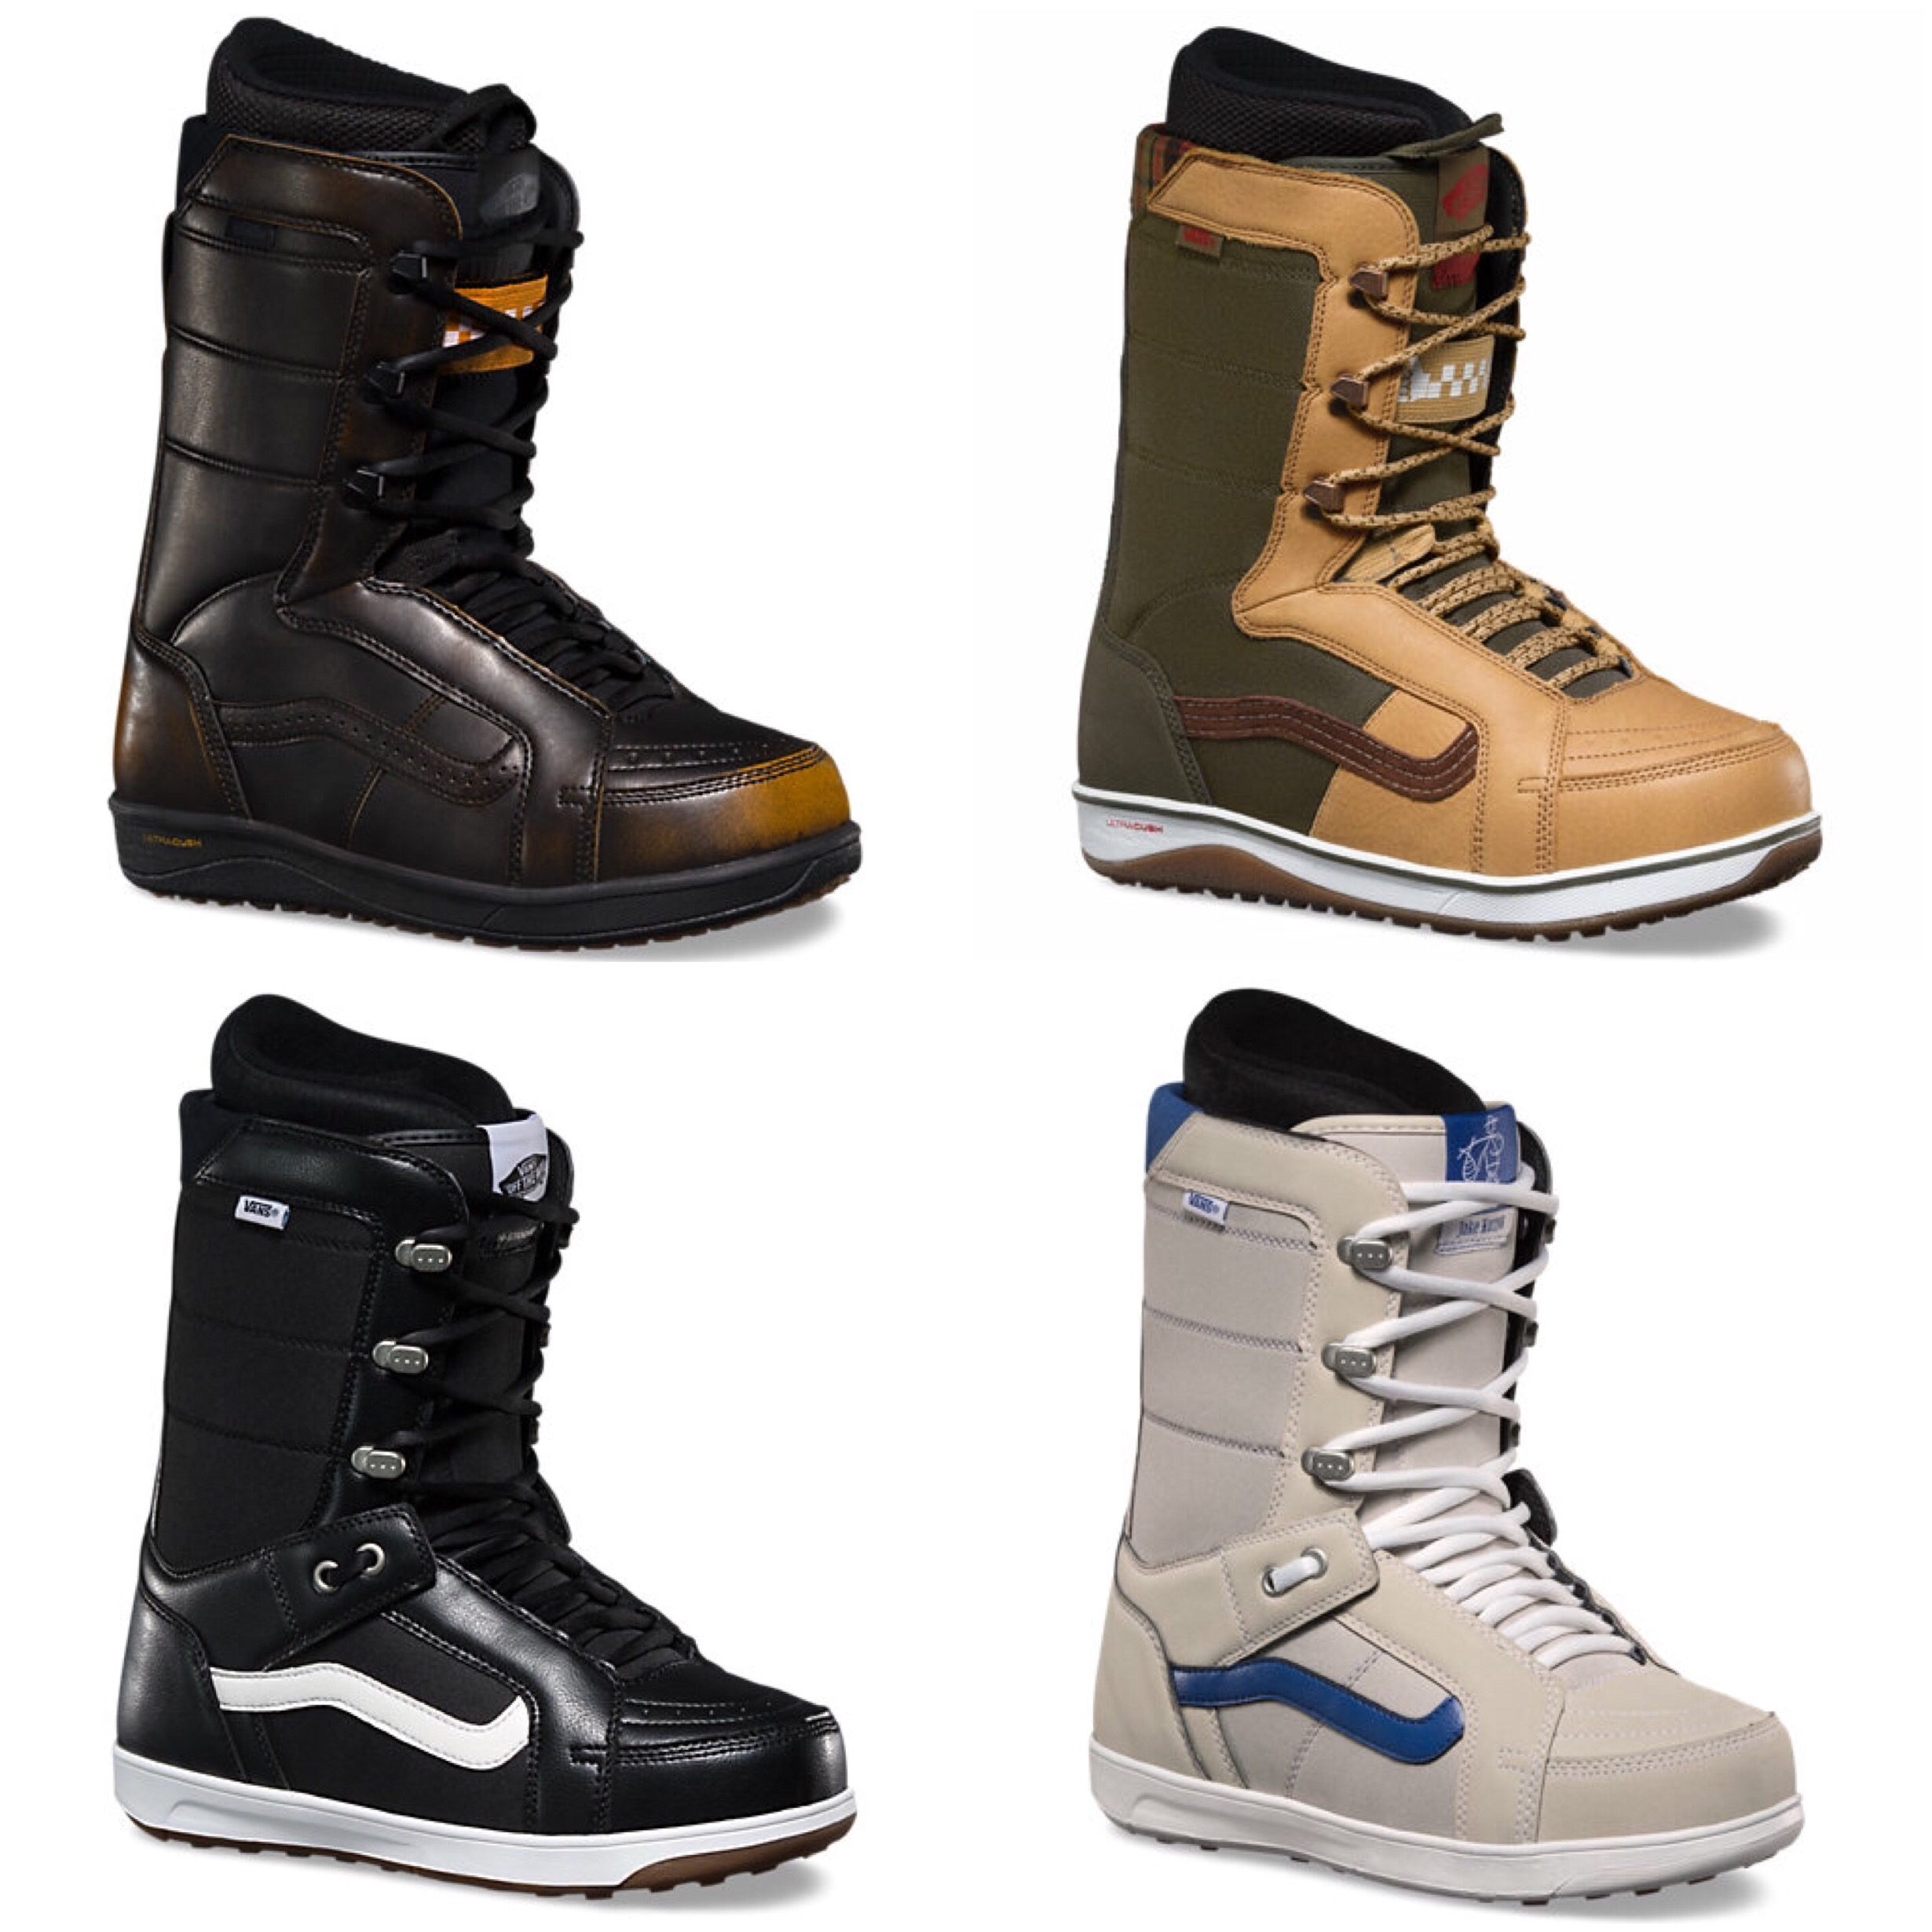 8a13d88846 2017 V66   High Standard boots from Vans are in stock! Stop in a save with  our pre season discounts!!!  Wausau  centralboardshop